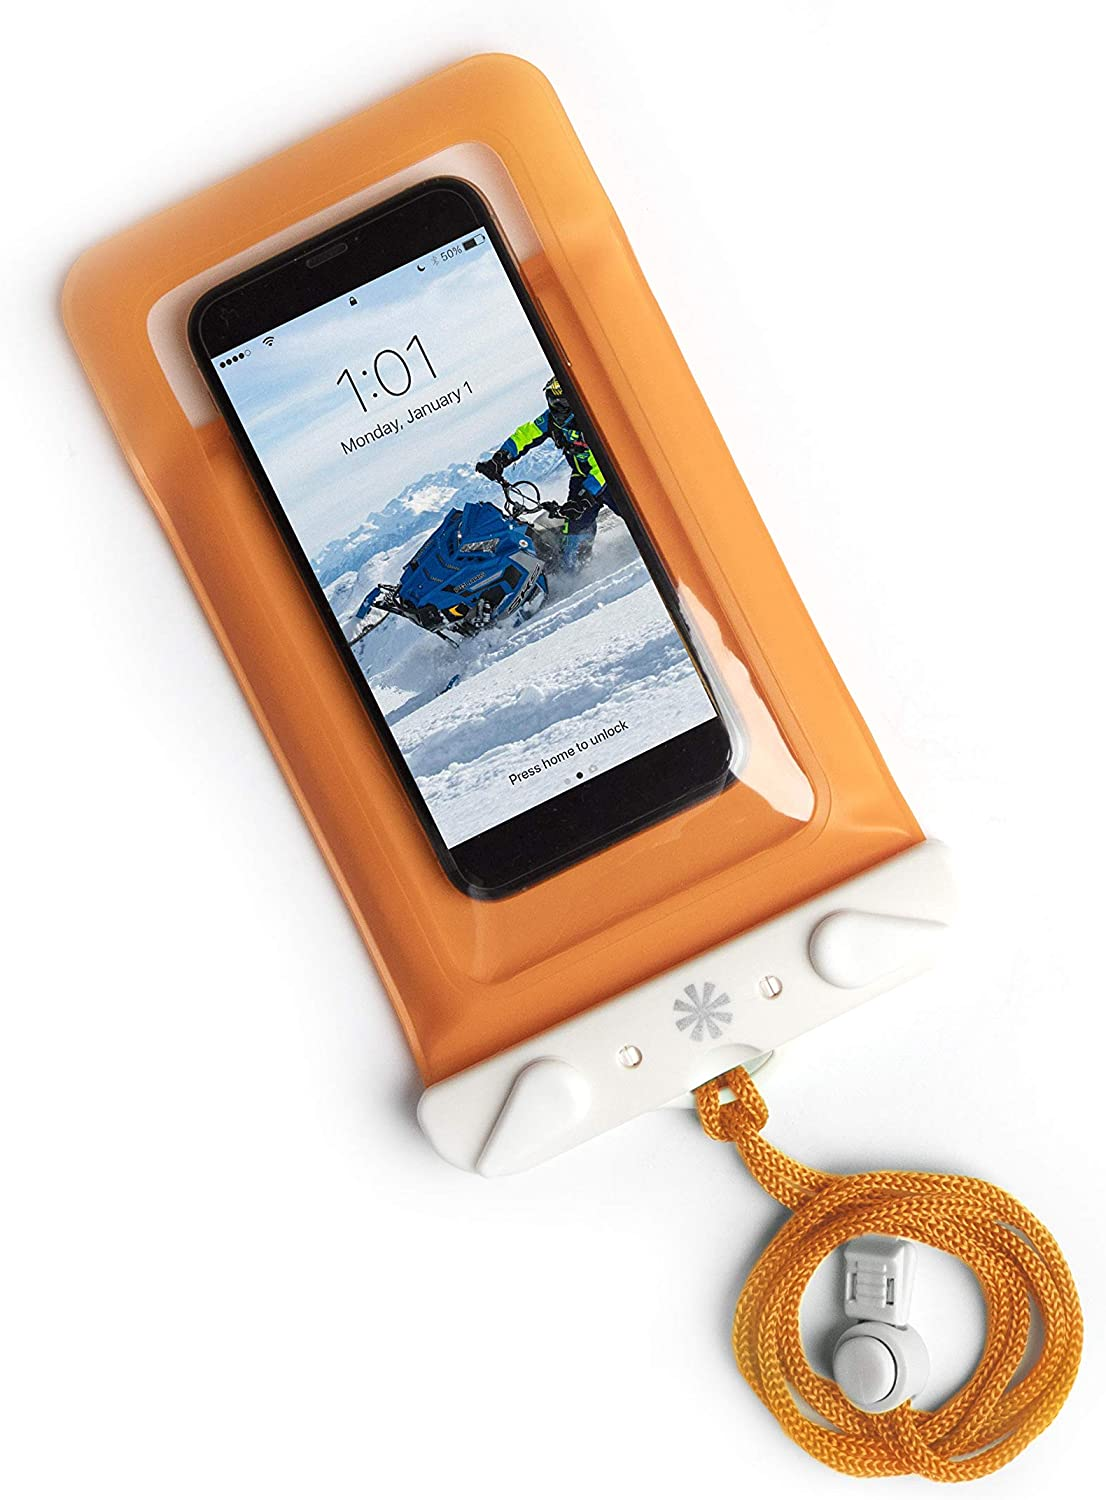 Tech Candy Dry Spell Water Defender Bag for iPhone & Android Floats Adjustable Lanyard Protection Text Thru Window Waterproof Snowproof Universal Pouch Beach Lake Ocean Pool2019 Edition (Orange)